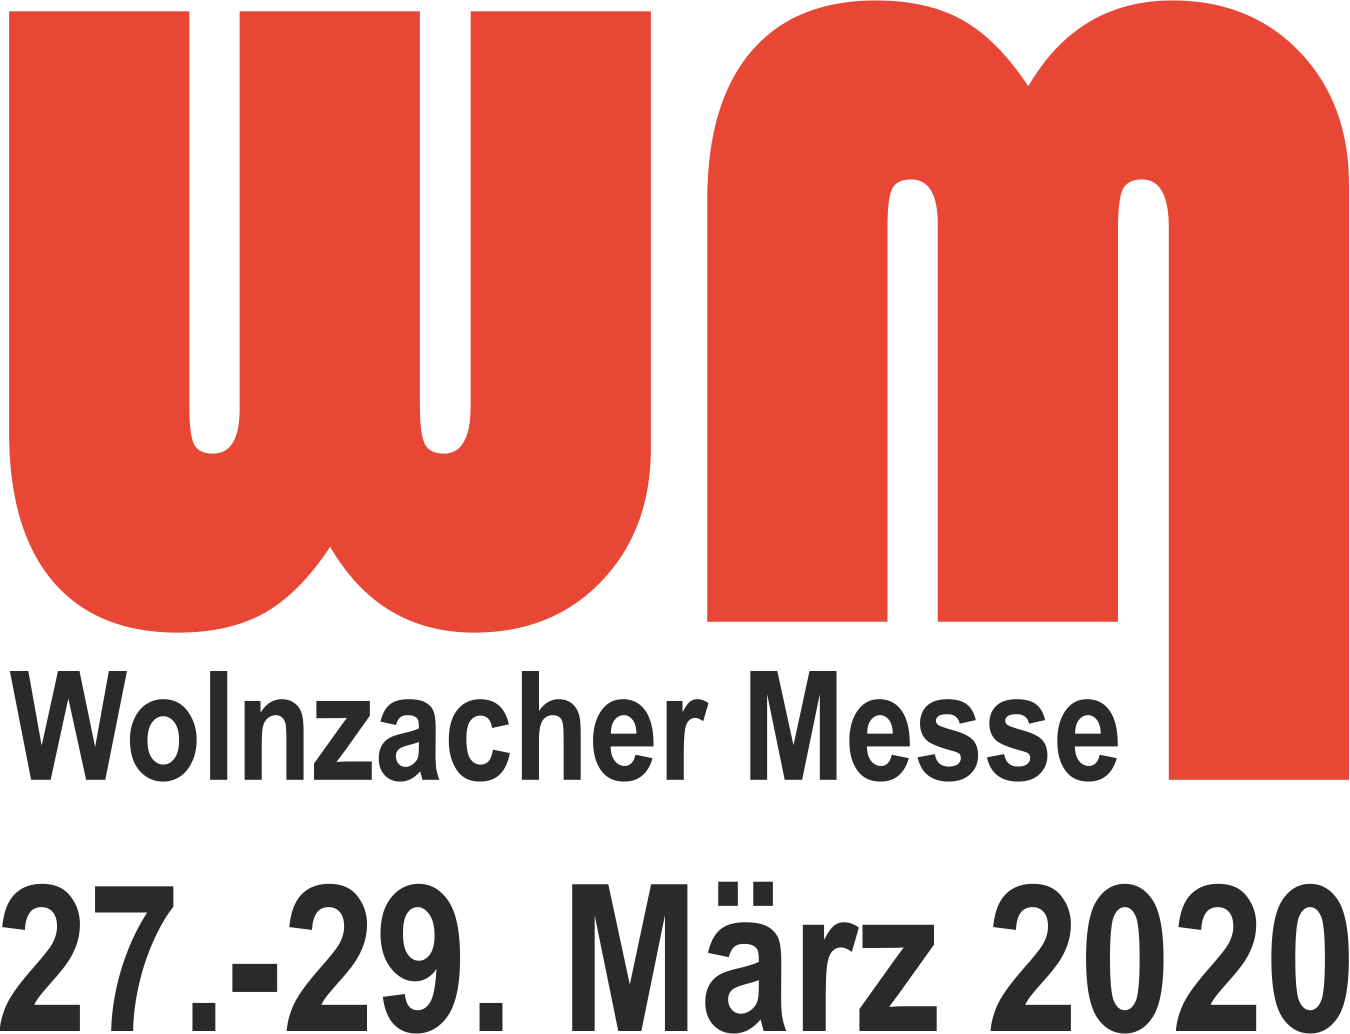 Wolnzacher Messe 2020